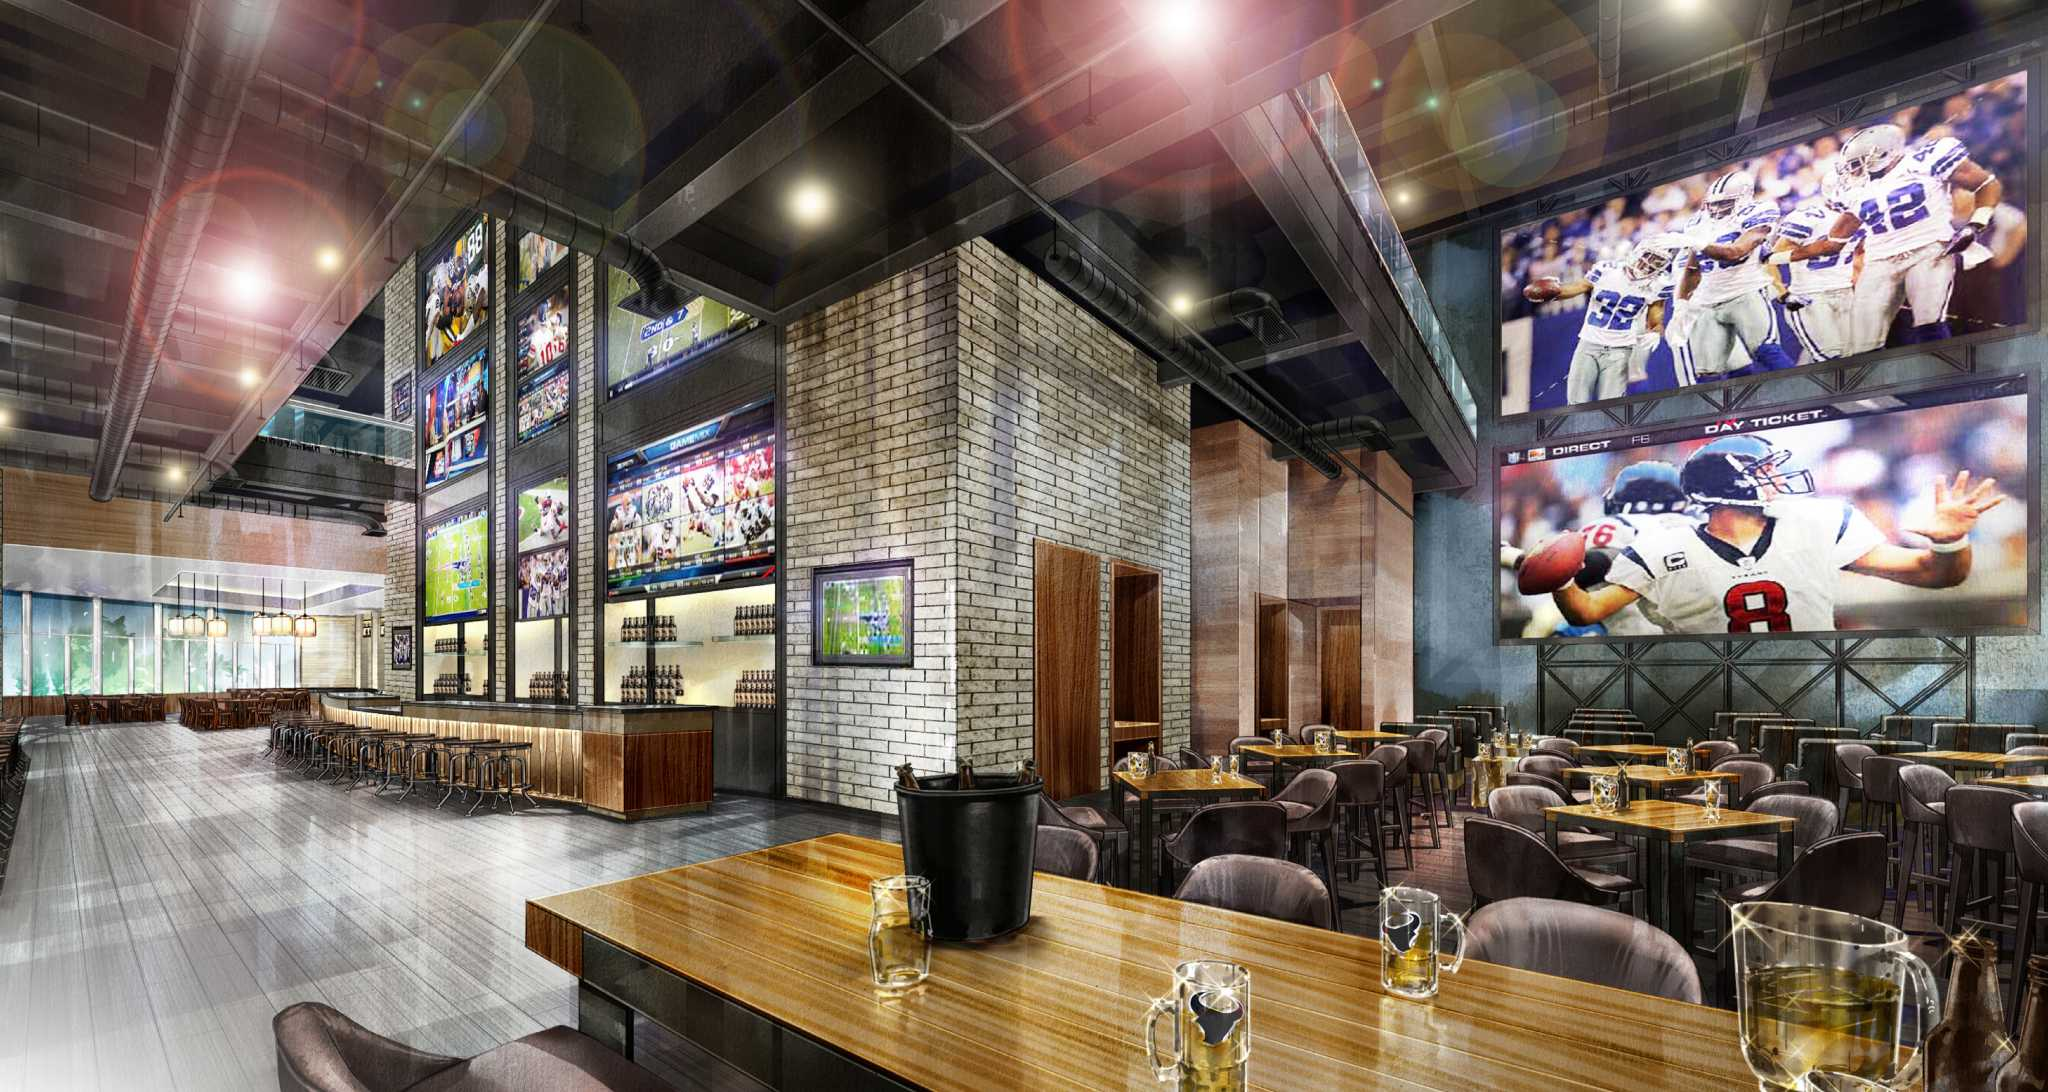 Craig biggio to open sports bar in downtown houston